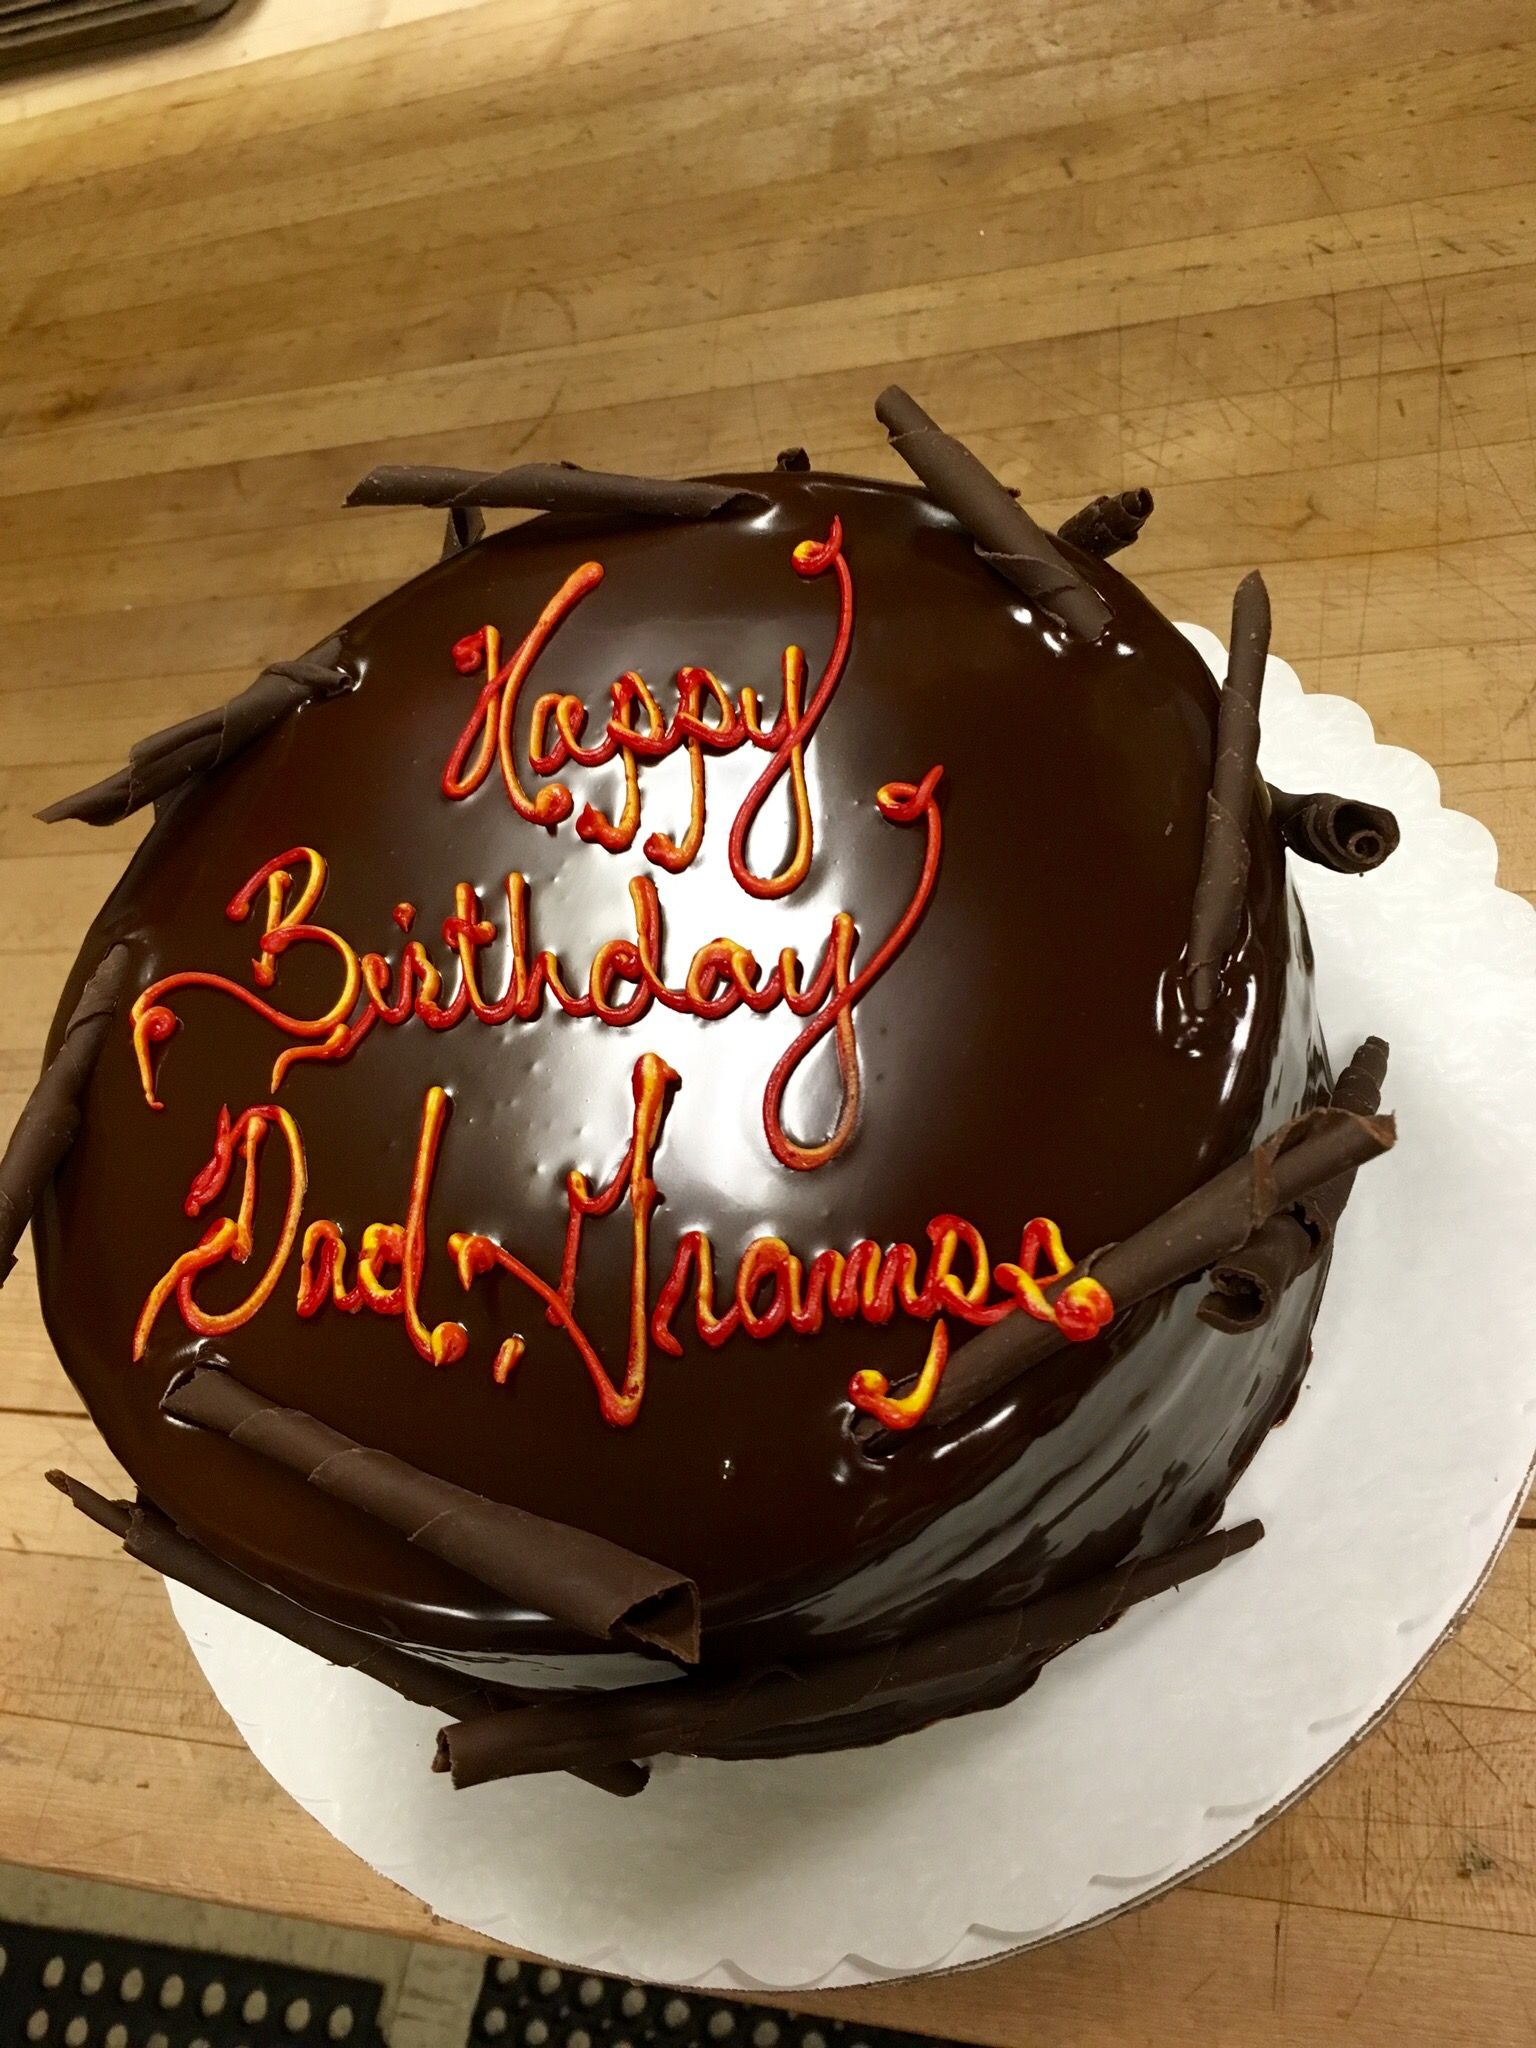 Chocolate Ganache Covered Birthday Cake With Chocolate Curls